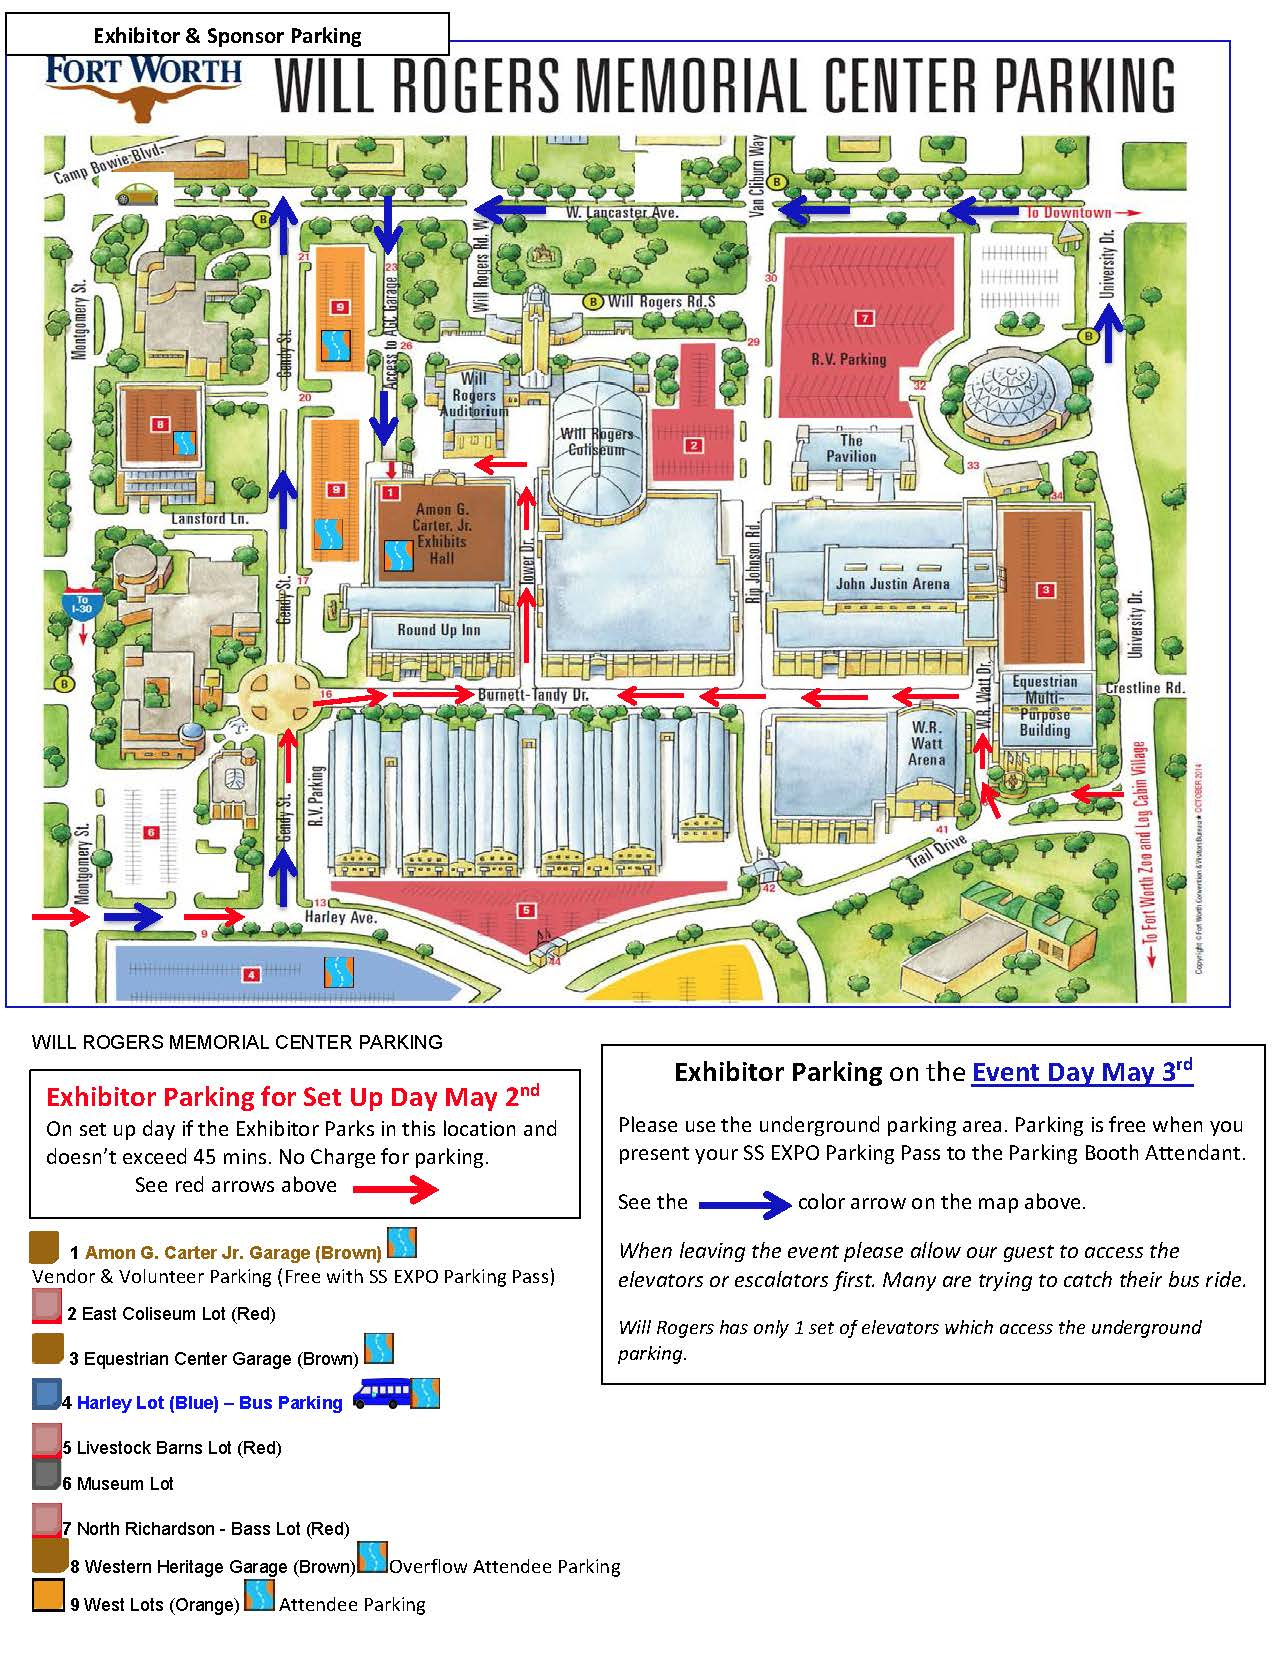 grossmont college campus map maps  directions campus map map  - grossmont college campus map miami maps